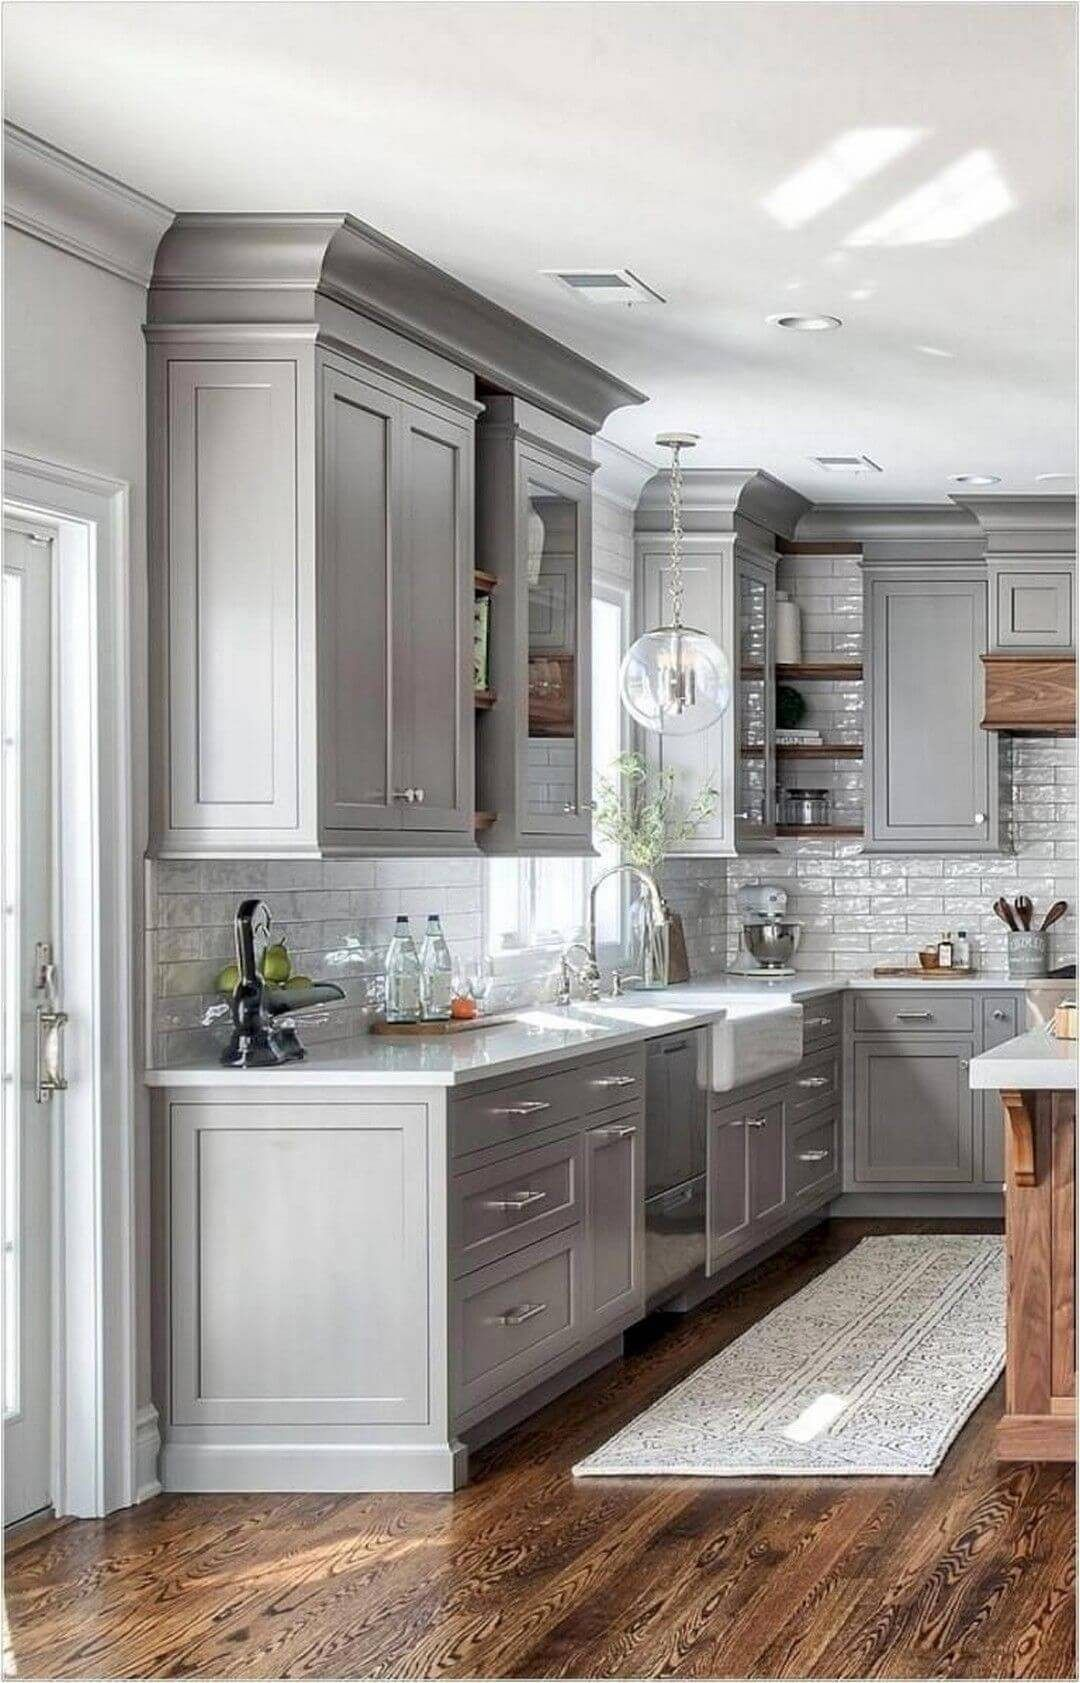 25 Bewildering Farmhouse Kitchen Designs (Traditional Beauties!) - 1B9Ef8210C8Ab9Fb6C2A19D351D4Aa13